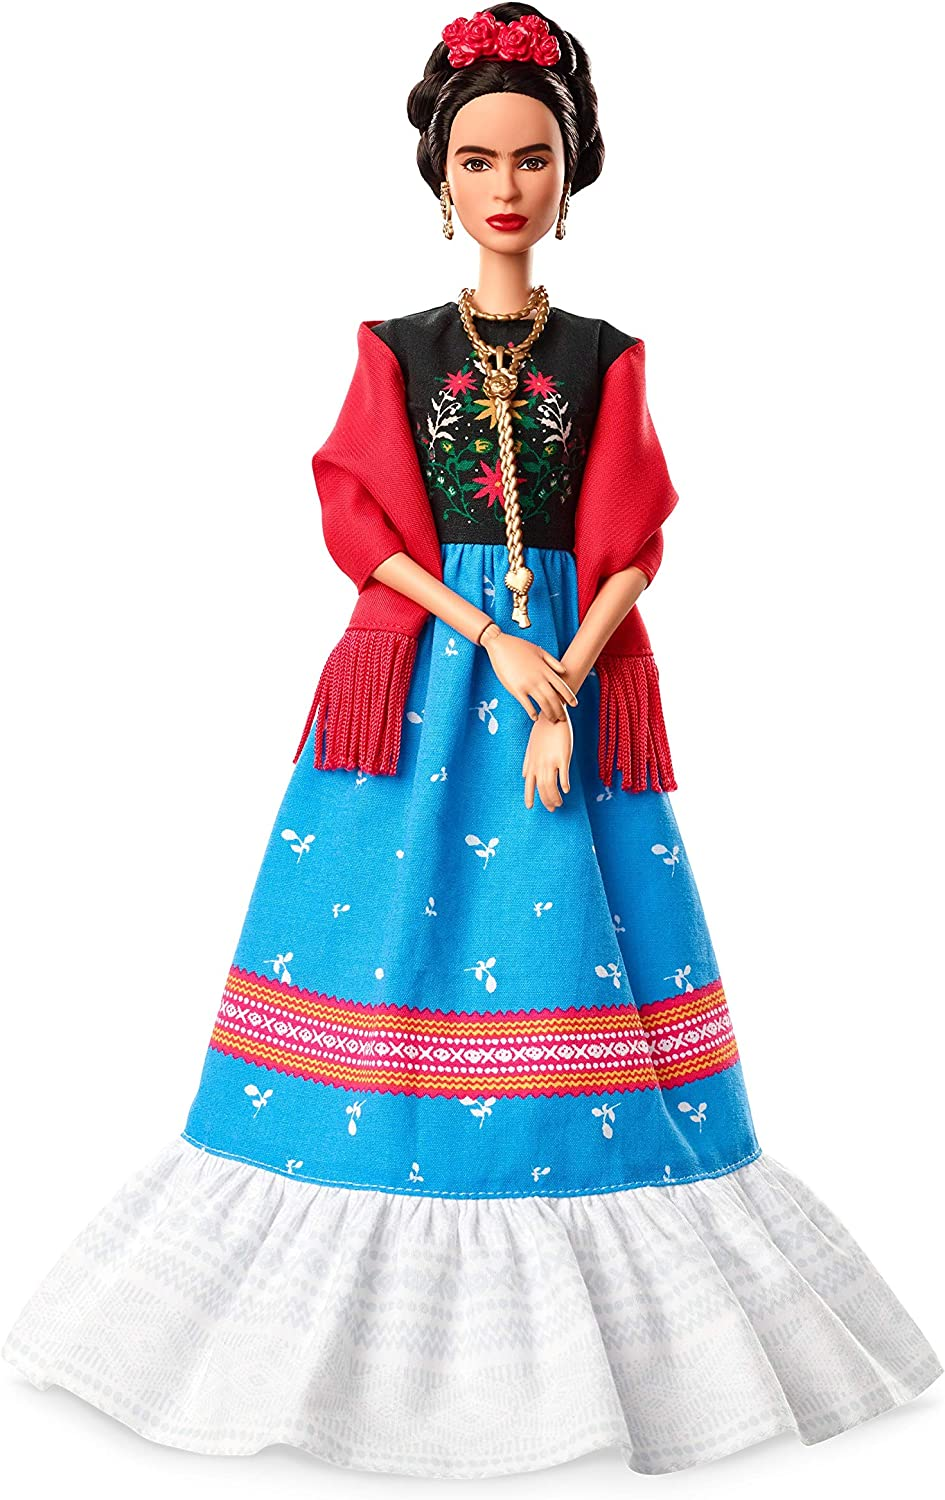 Amazon.es: Barbie Collector, muñeca Frida Khalo de